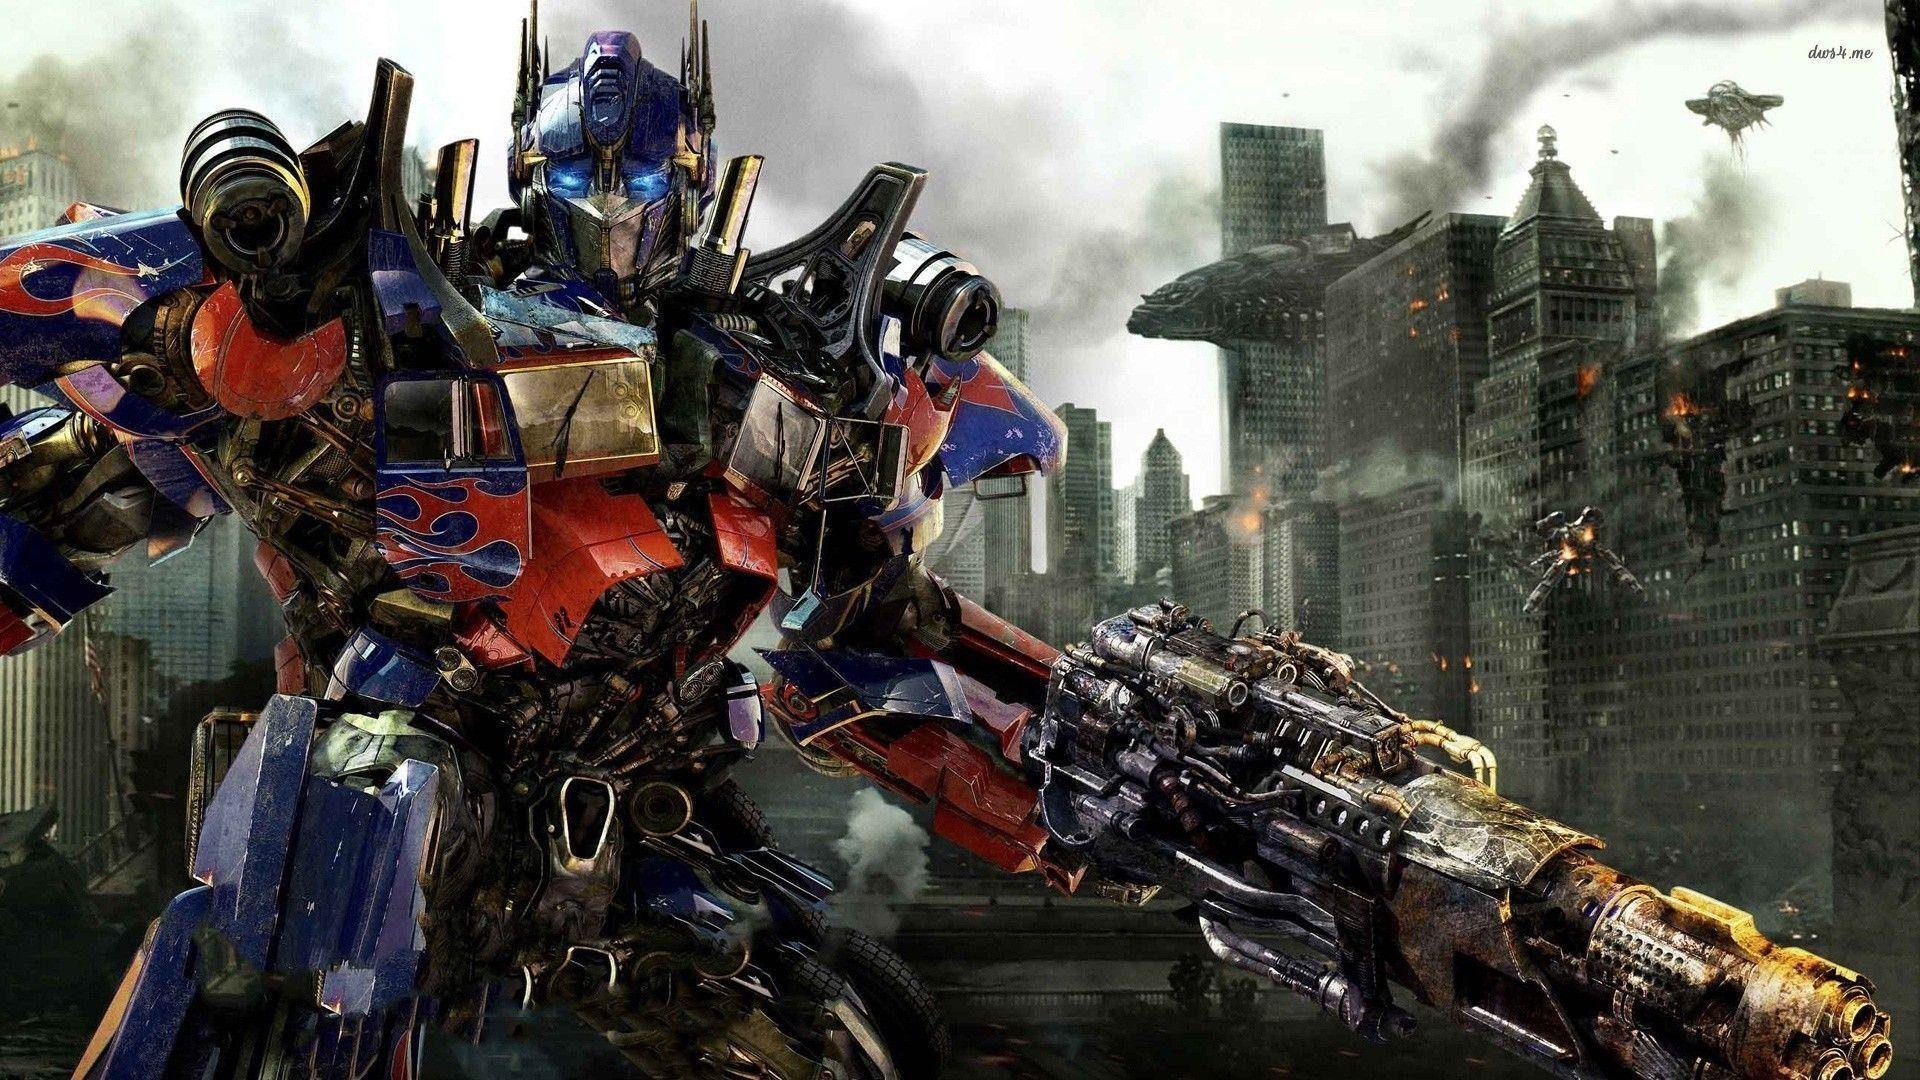 Imagenes De Transformers: Transformers 2 Optimus Prime Wallpapers